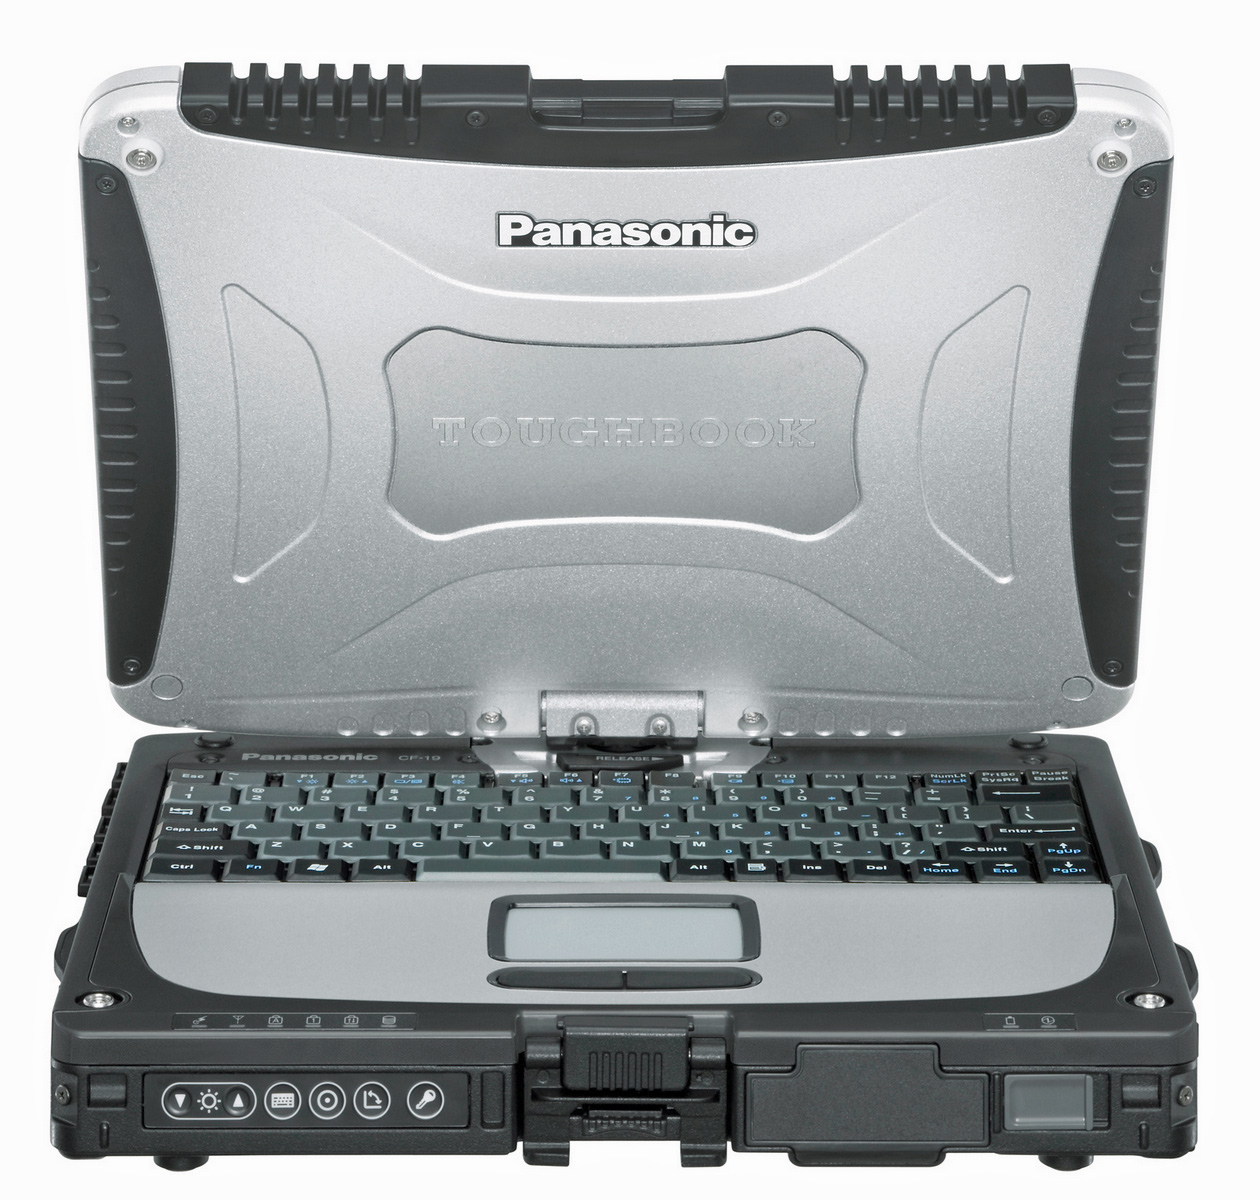 Panasonic toughbook with screen fully twisted to turn into a tablet